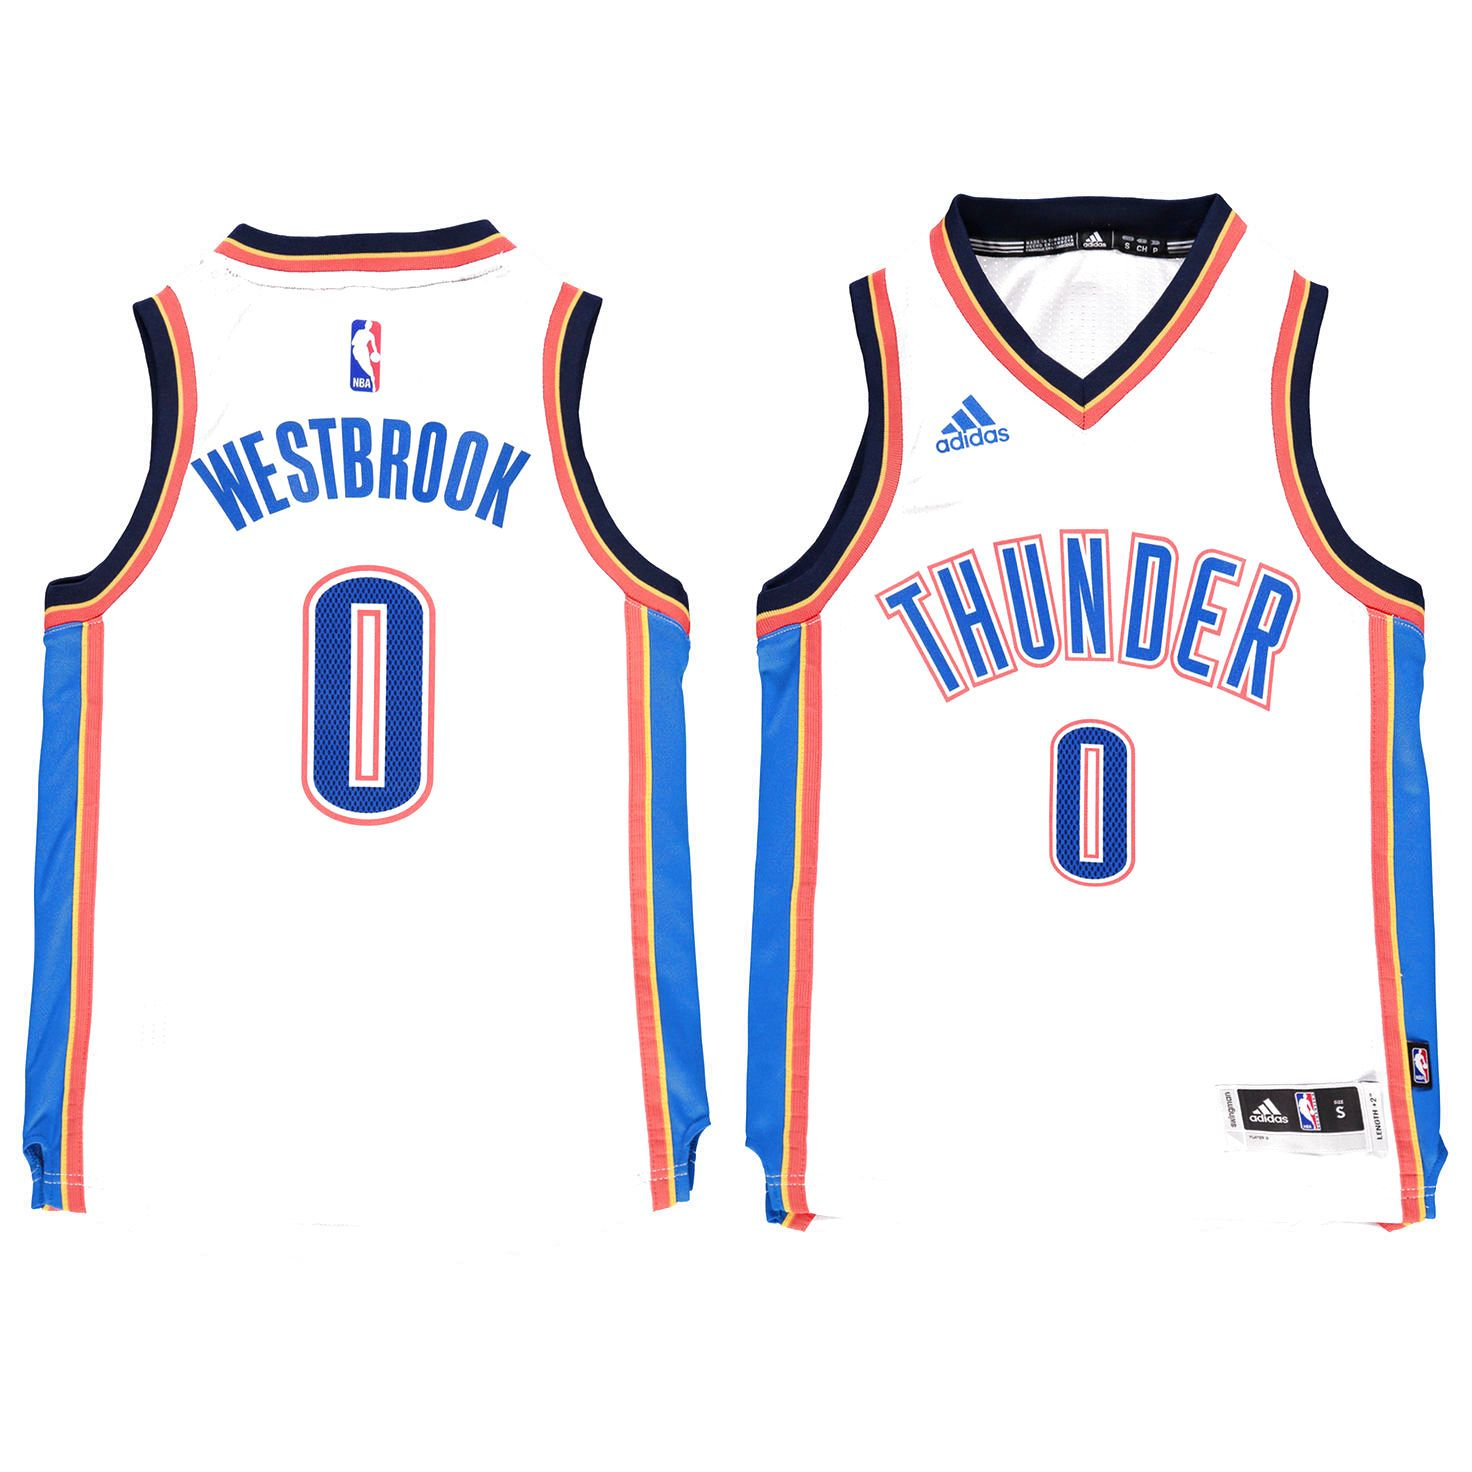 ce25d55ff4f Russell Westbrook Oklahoma City Thunder Youth Swingman Basketball Jersey -  White -  59.99